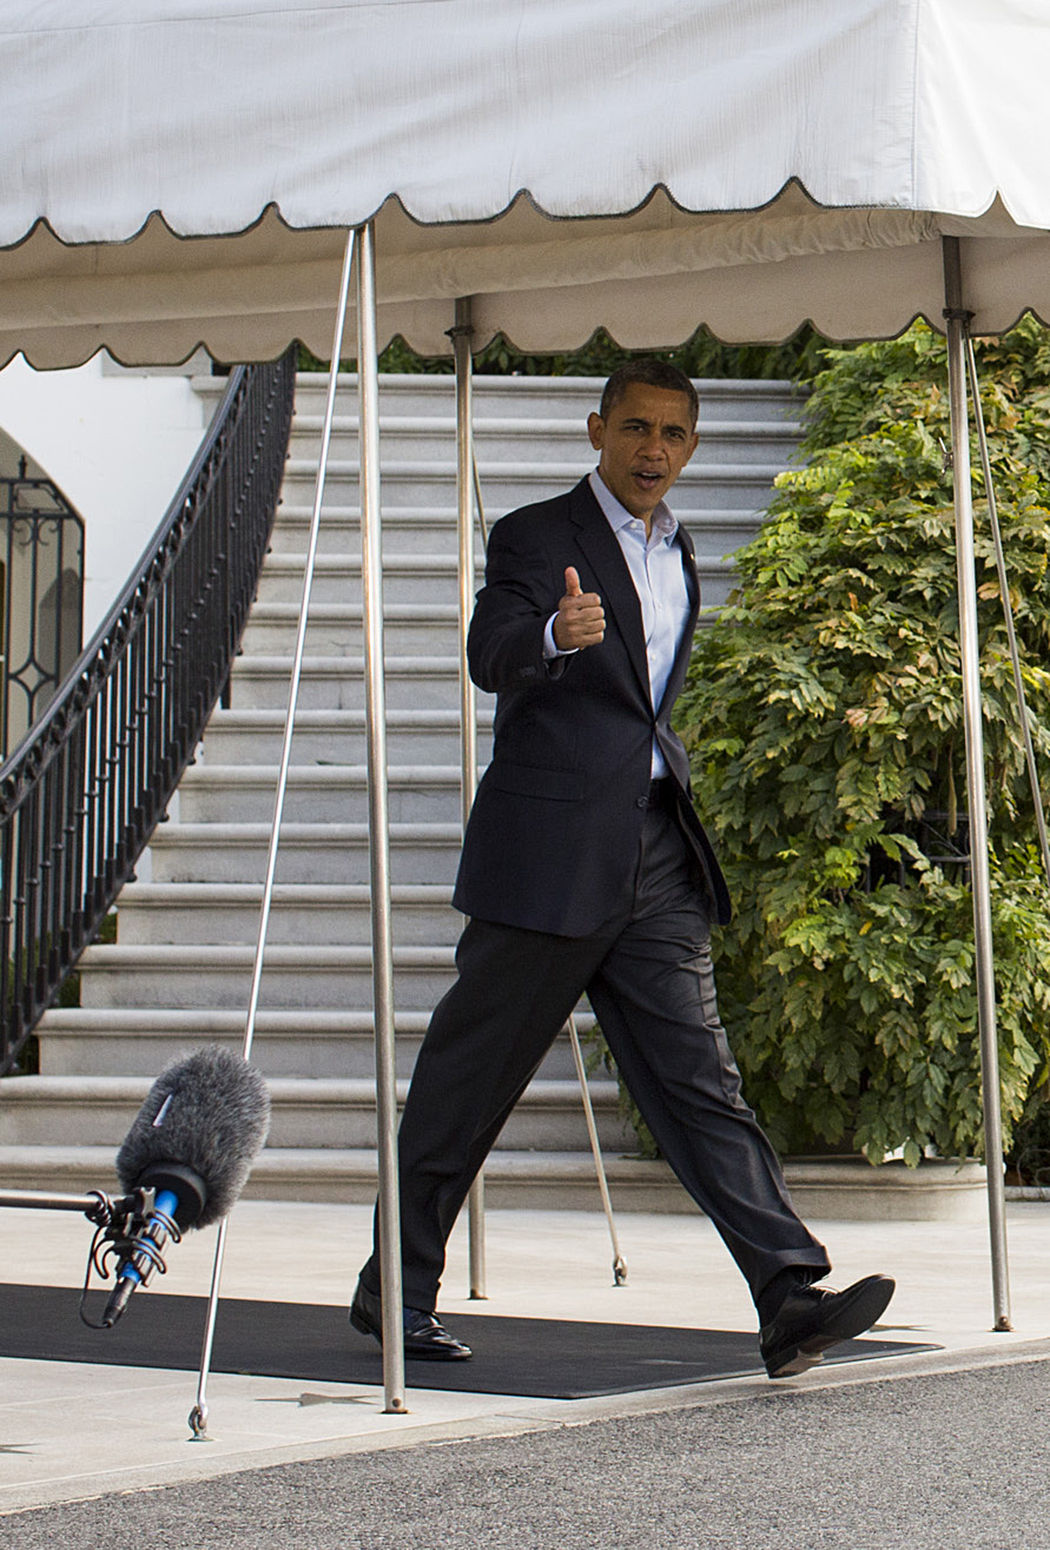 President Obama Departs White House For Campaign Trail